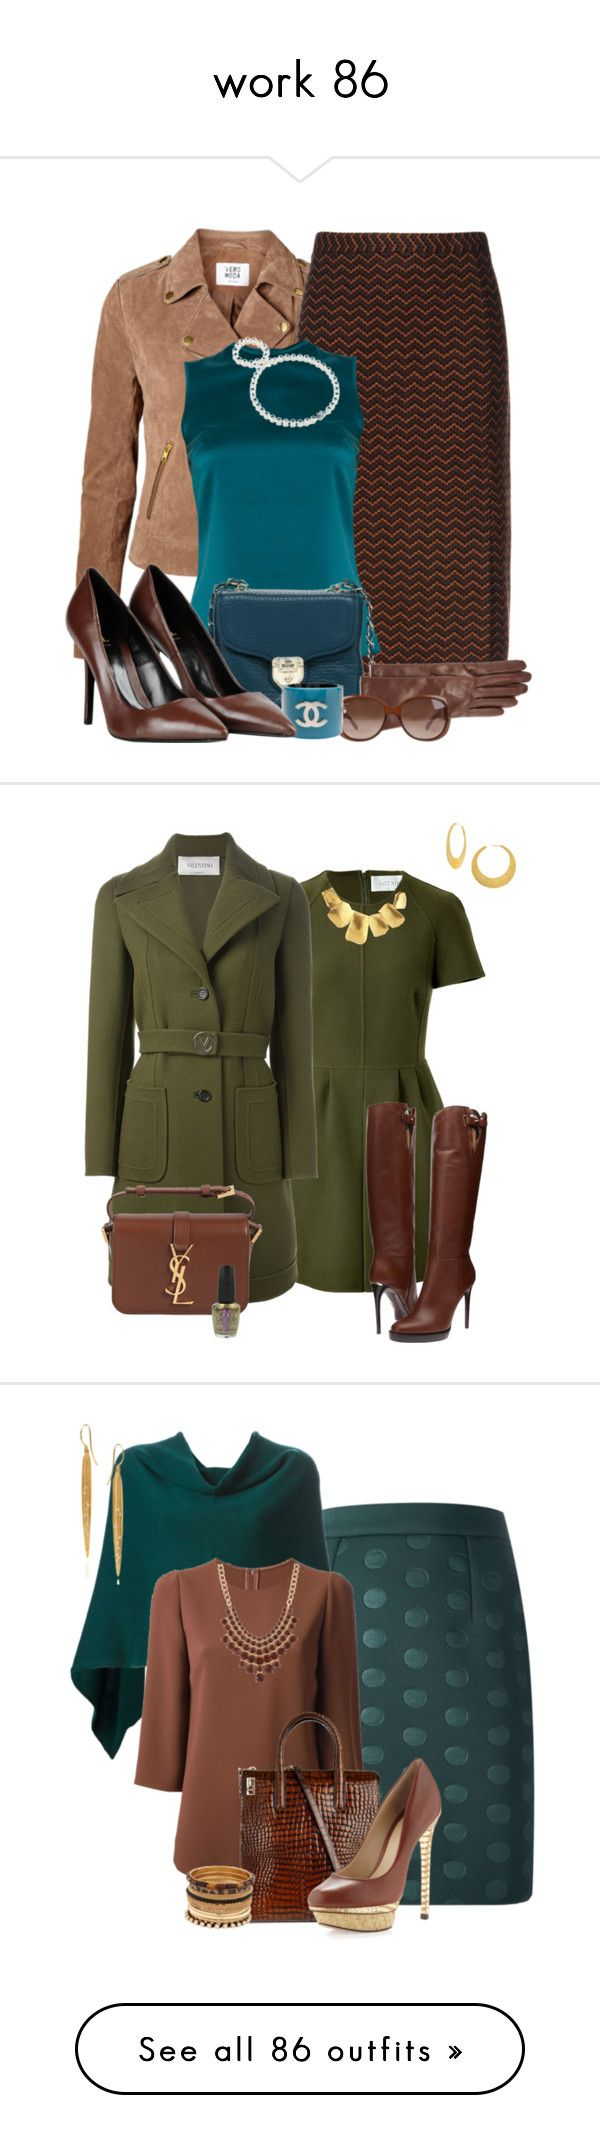 """""""work 86"""" by kalistabyme ❤ liked on Polyvore featuring Vero Moda, Missoni, Safiyaa, Love Moschino, Portolano, Gucci, Chanel, George J. Love, Tiffany & Co. and Valentino"""